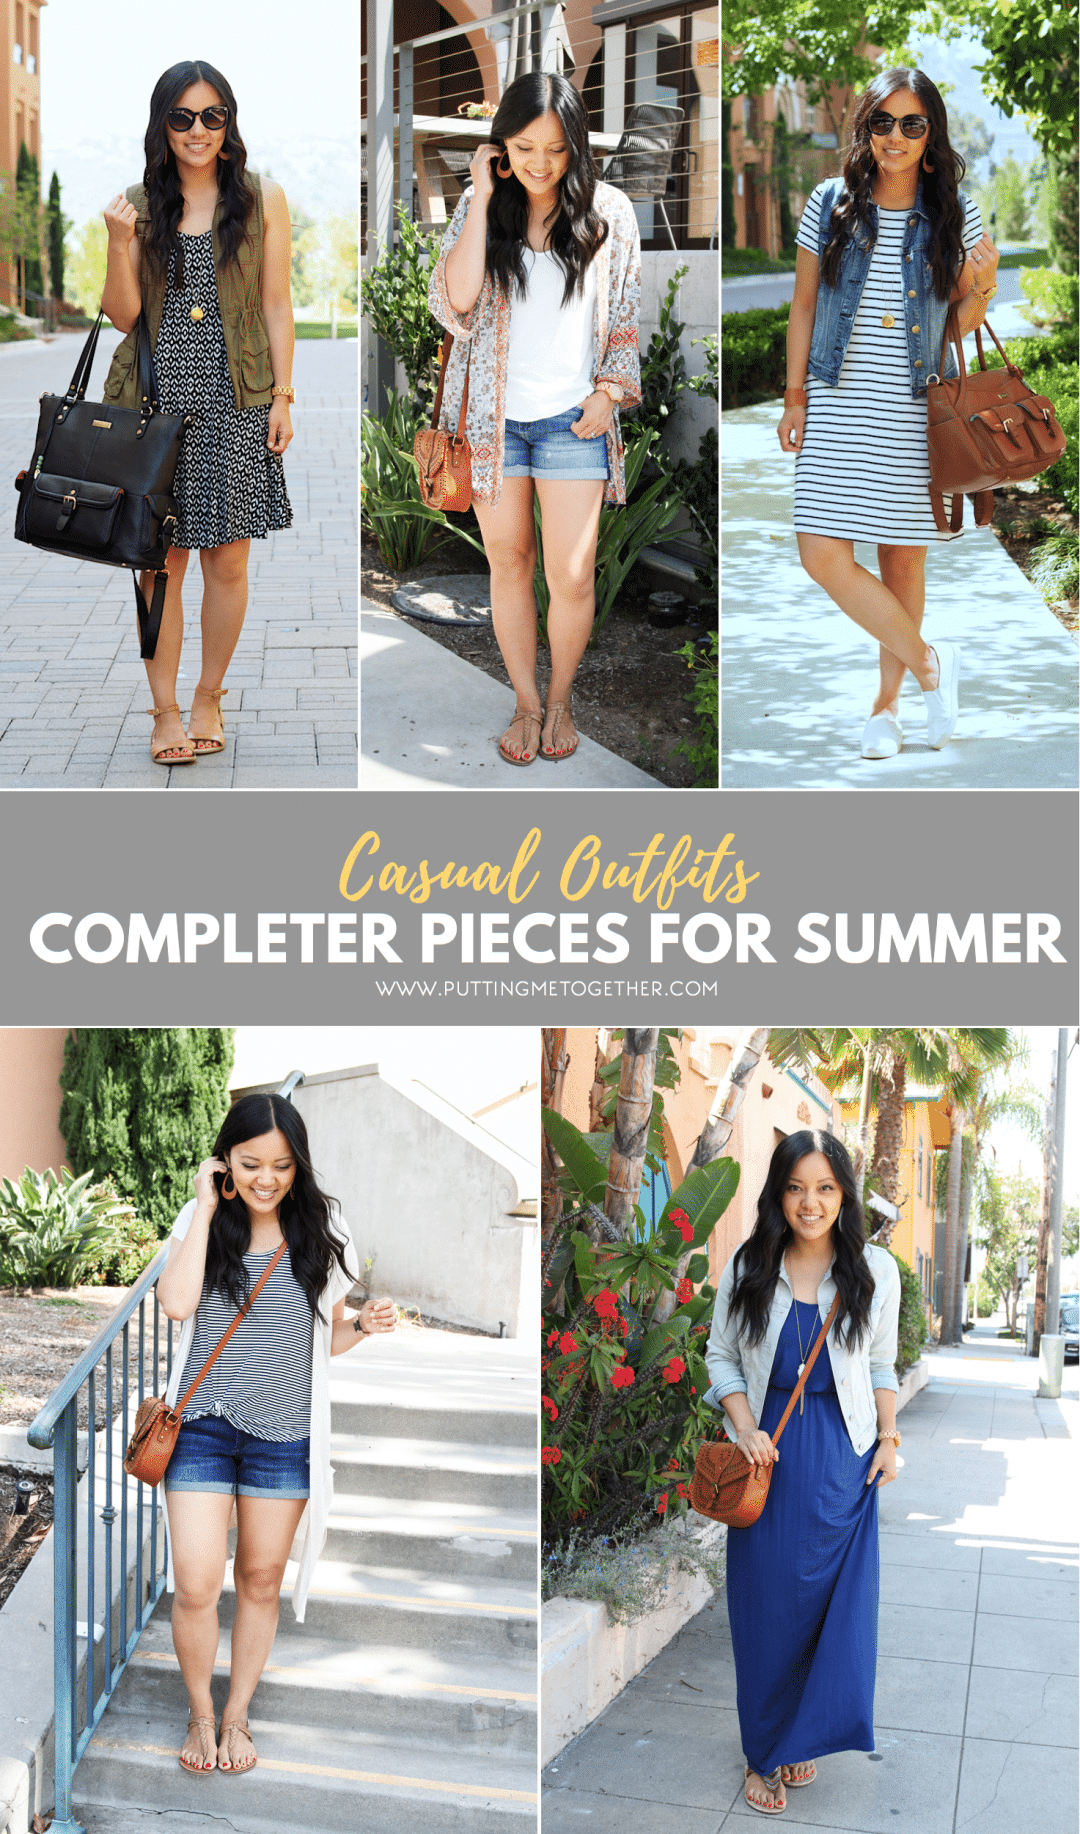 Completer Pieces for Casual Summer Outfits